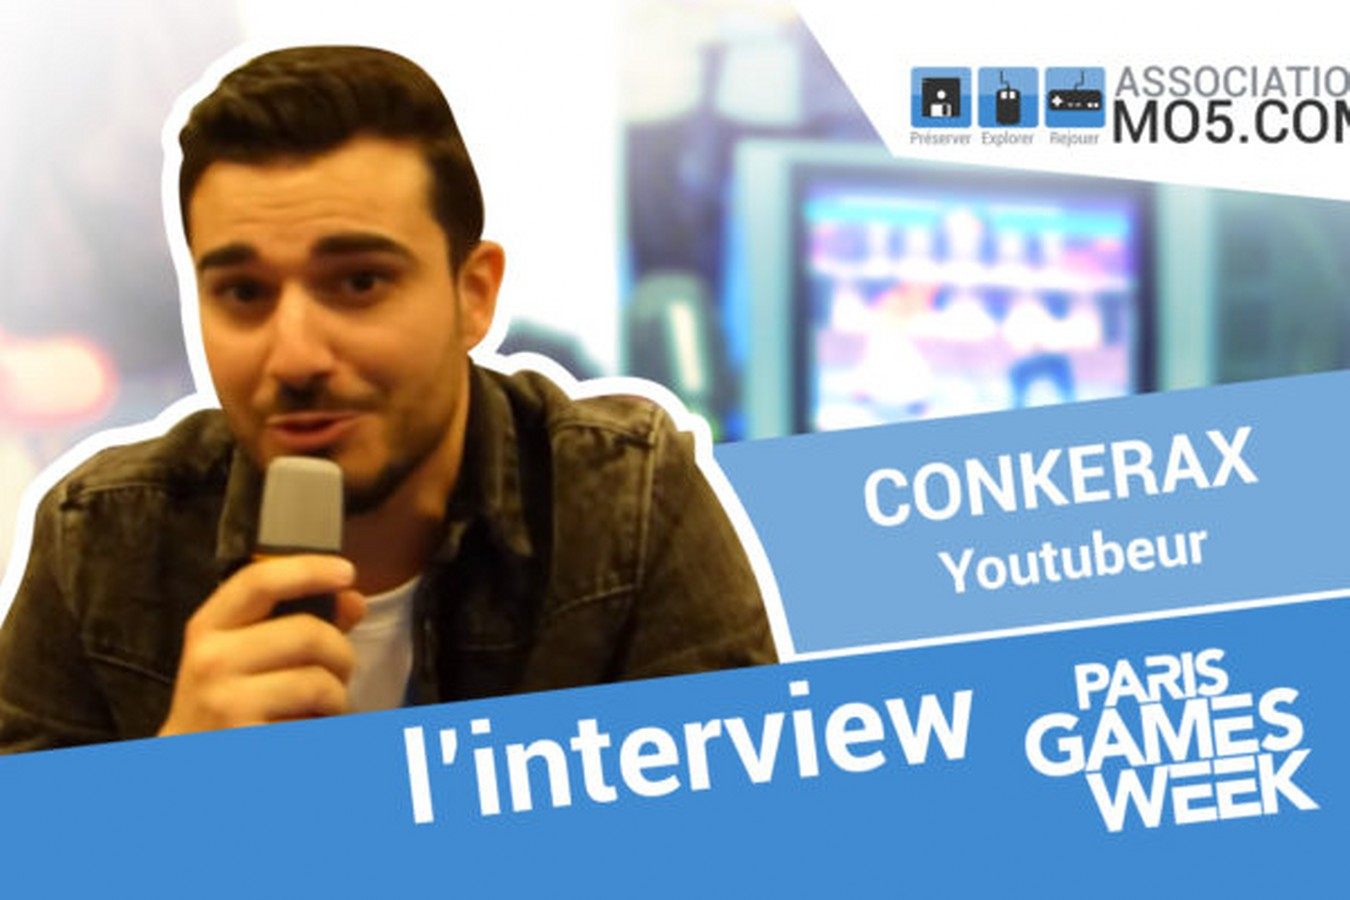 InterviewPGW19 CONKERAX